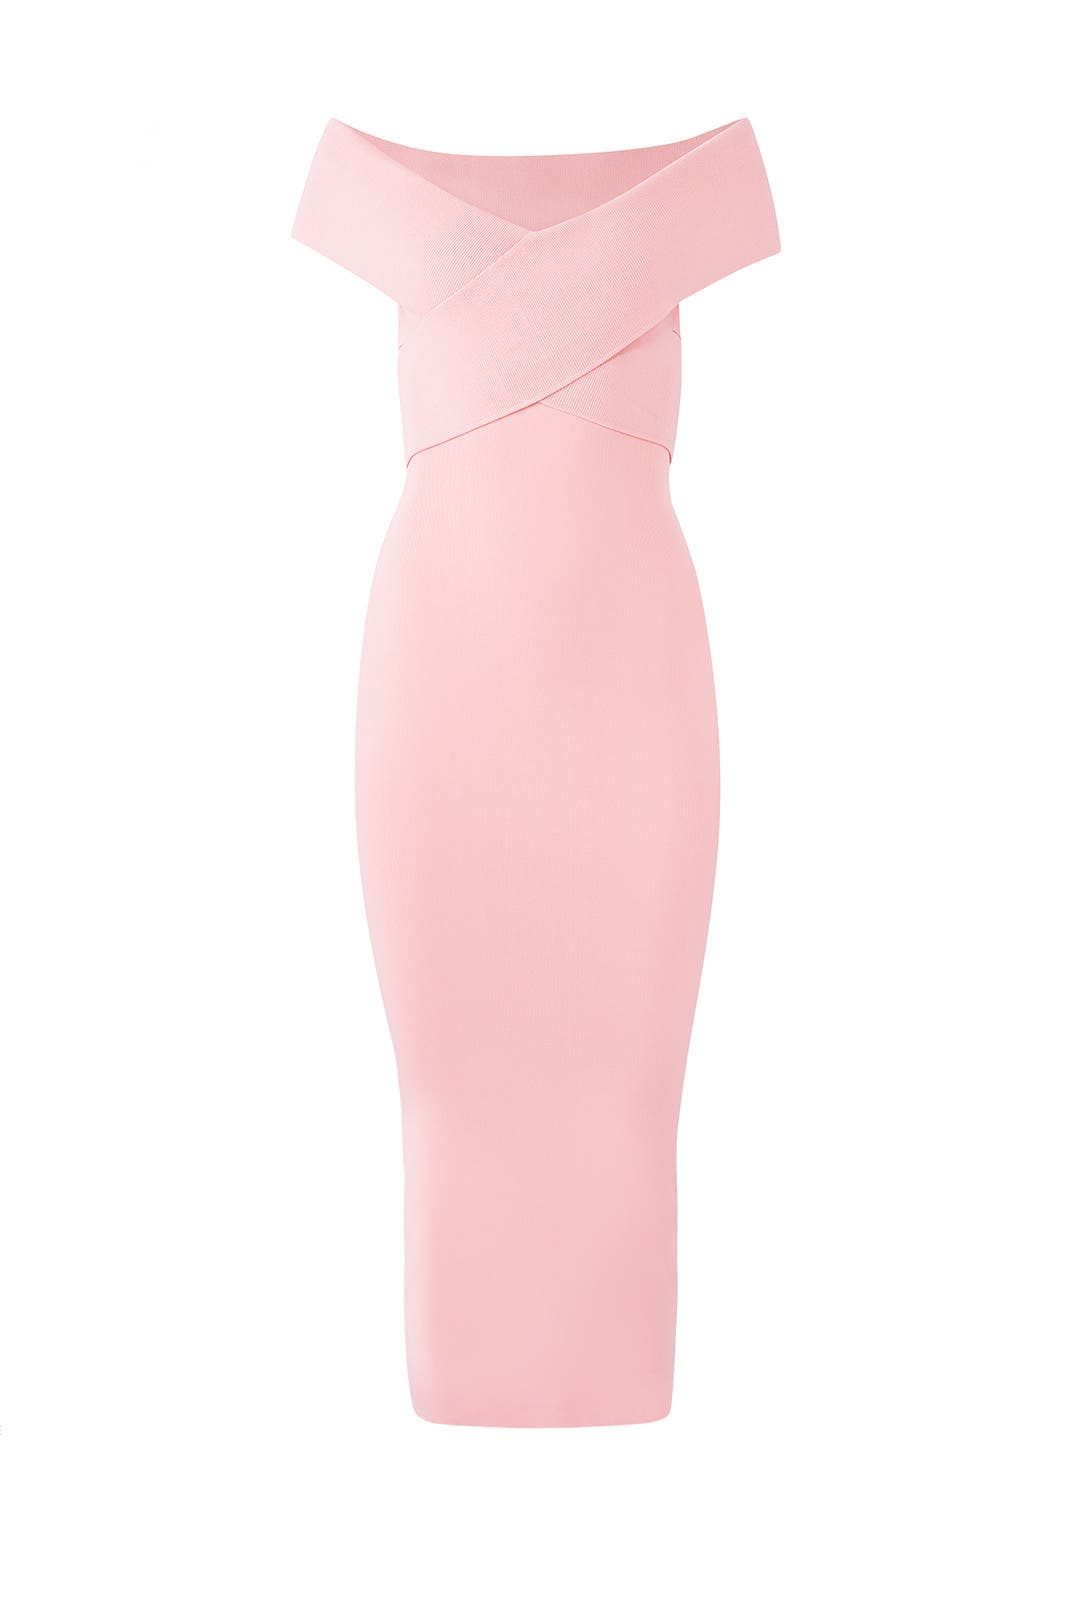 Pink Cecile Sheath by Solace London for $80 - $90 | Rent the Runway